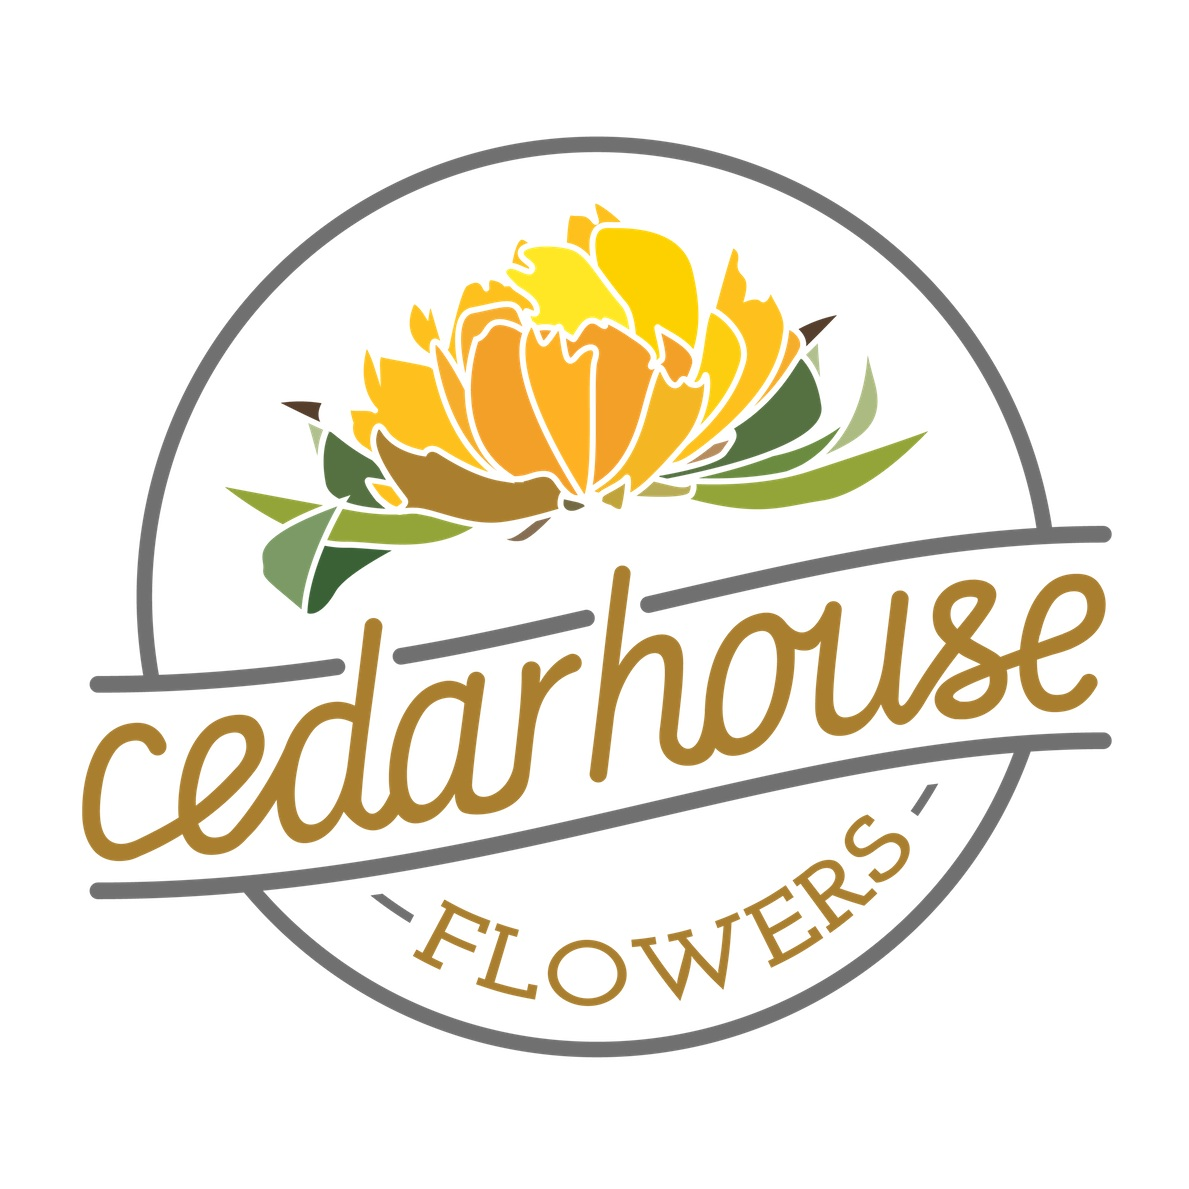 Floral Design by Cedarhouse Flowers